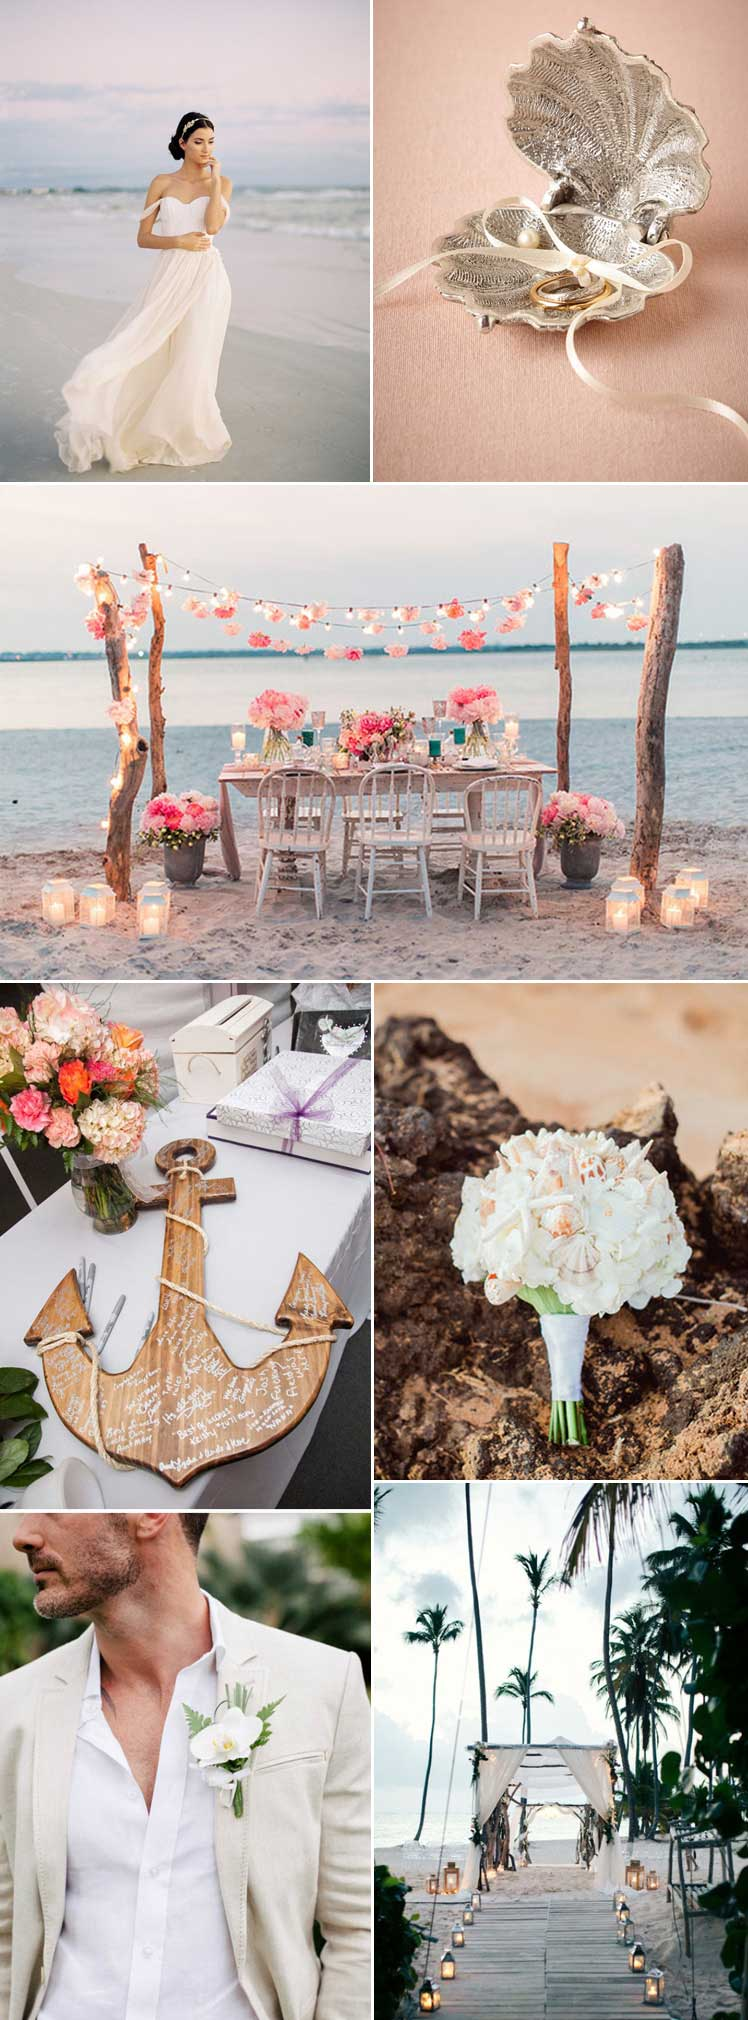 fabulous inspiration for a romantic beach wedding